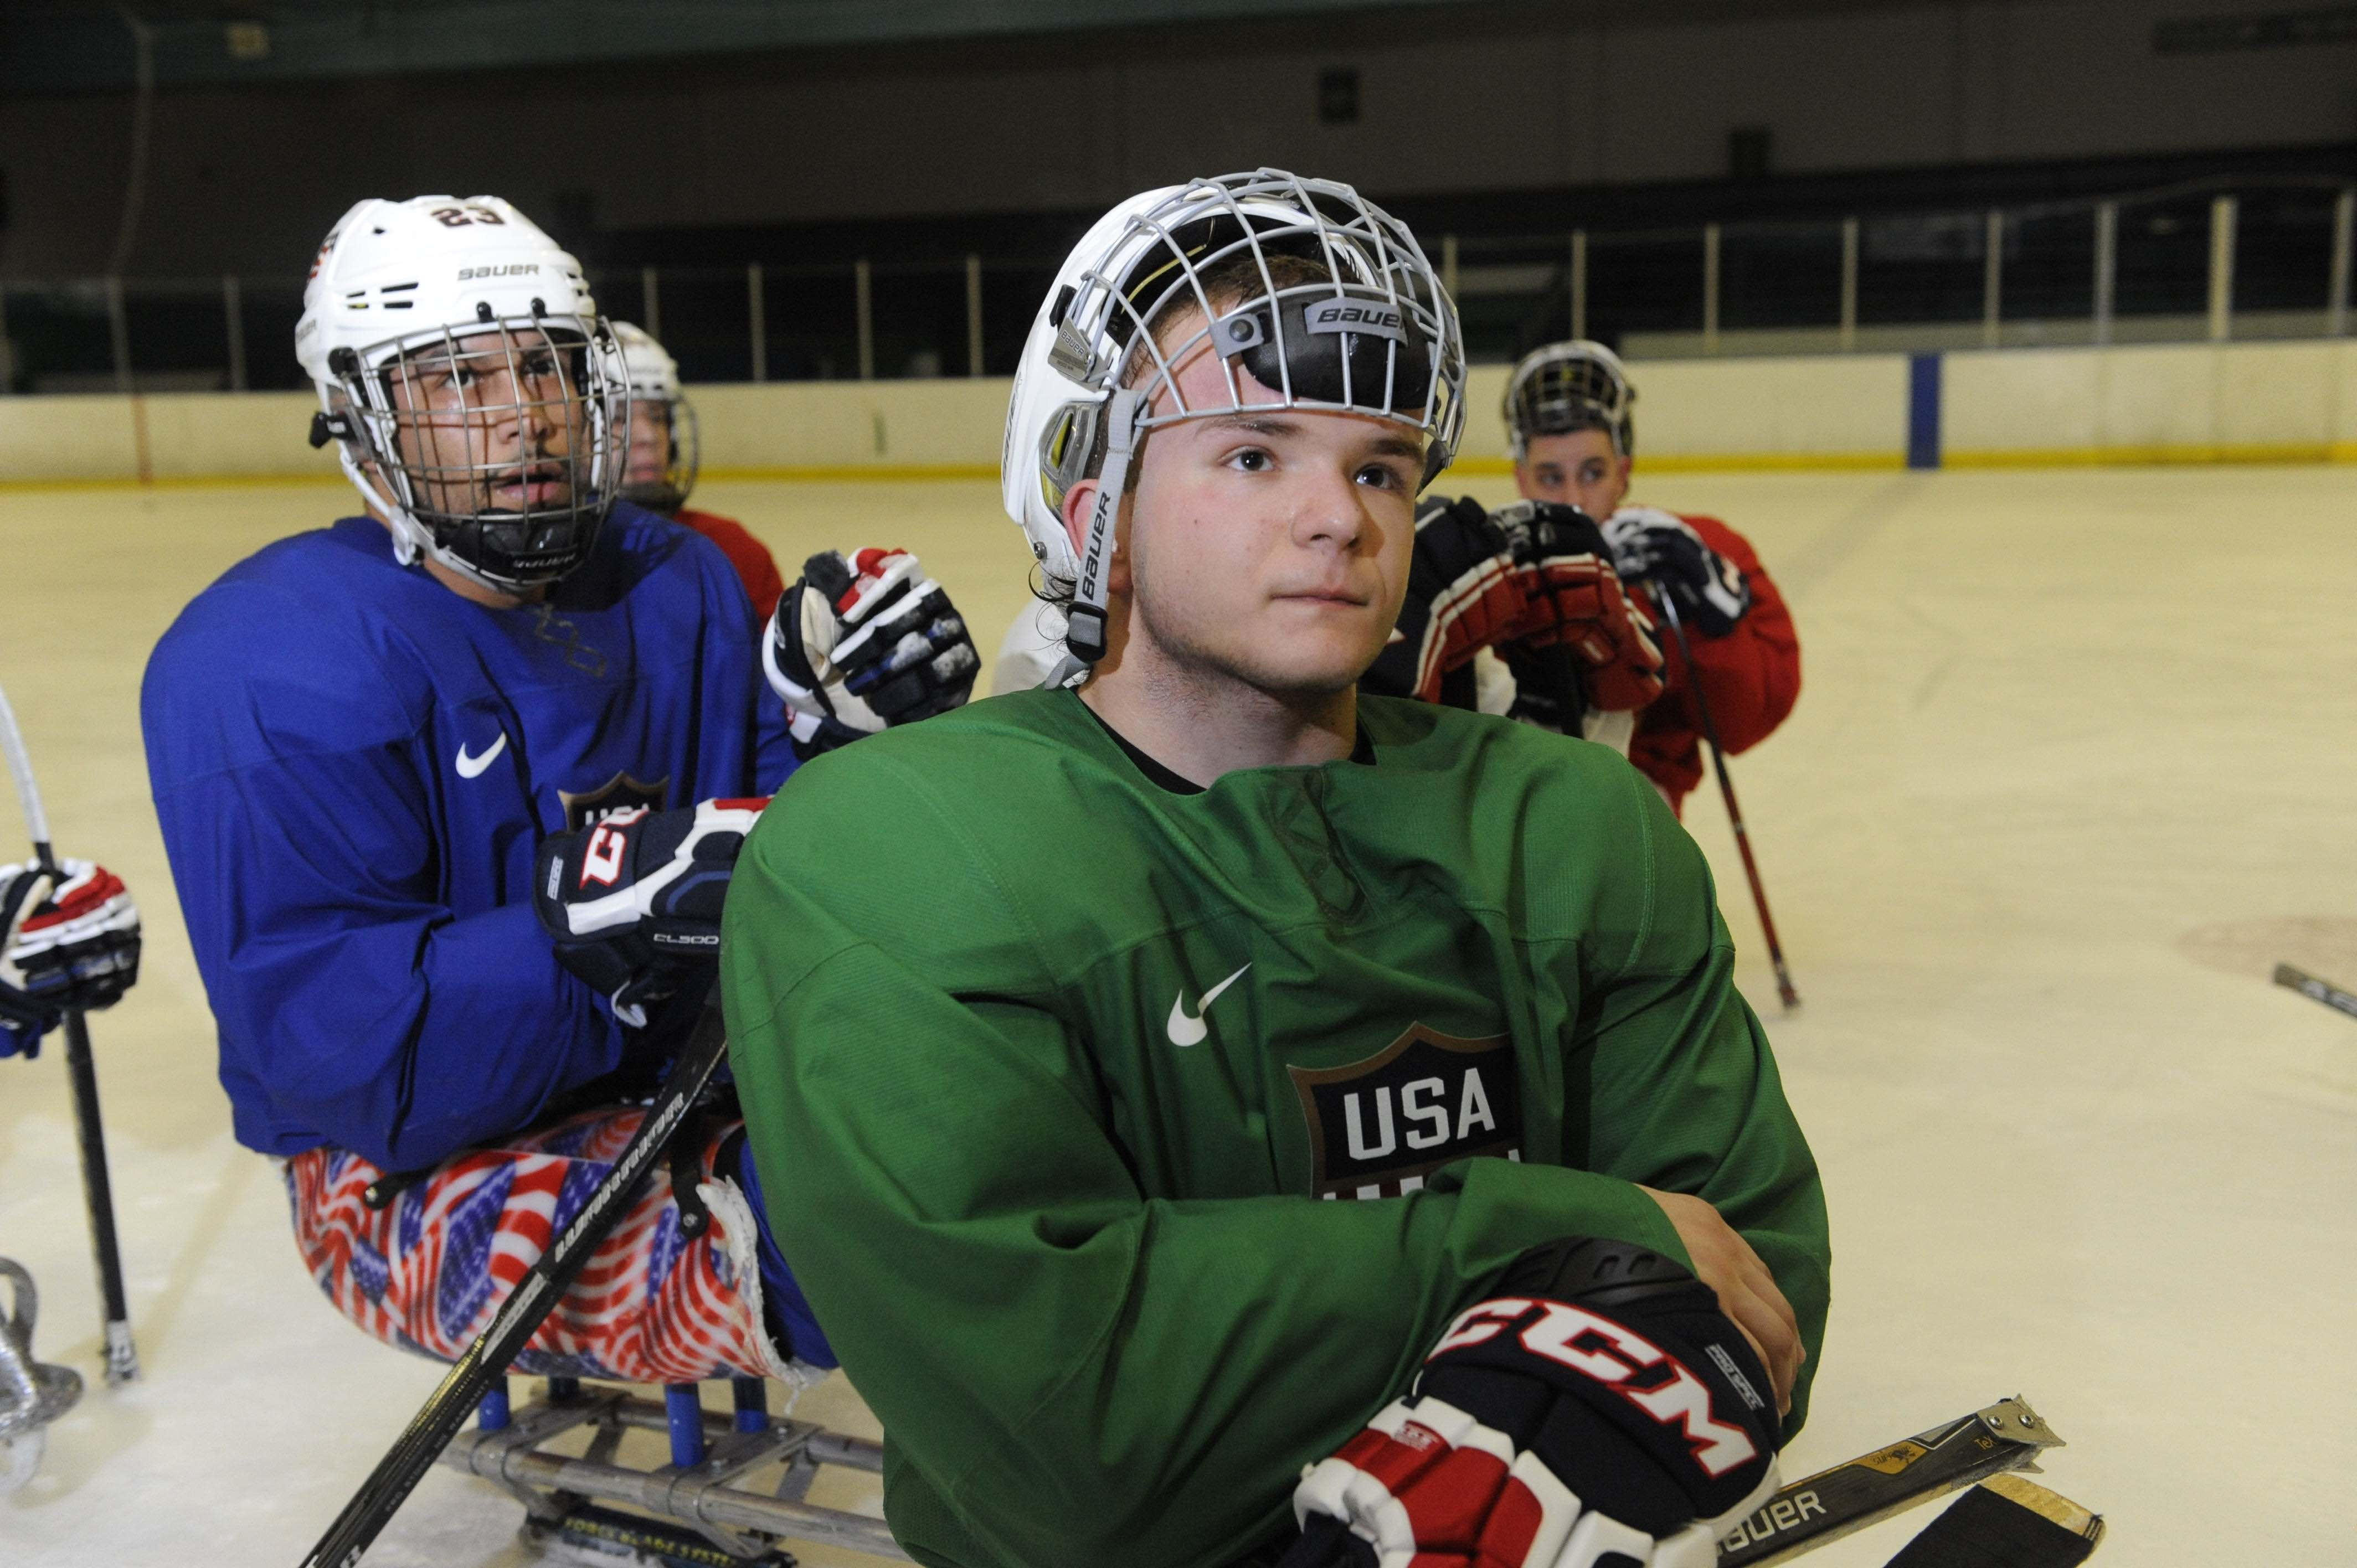 COLORADO SPRINGS, CO. FEBRUARY 27: U.S. Paralympic Sled Hockey Team athlete Josh Pauls listens to Head Coach Jeff Sauer discuss a team shooting drill while practicing at the Sertich Ice Arena in Colorado Springs, Colorado on February 27, 2014. The team travels to Sochi, Russia this week to begin defense of their 2010 Paralympic gold medal at the 2014 Paralympic Winter Games in Sochi, Russia. (Photo by Jason Connolly/Getty Images)